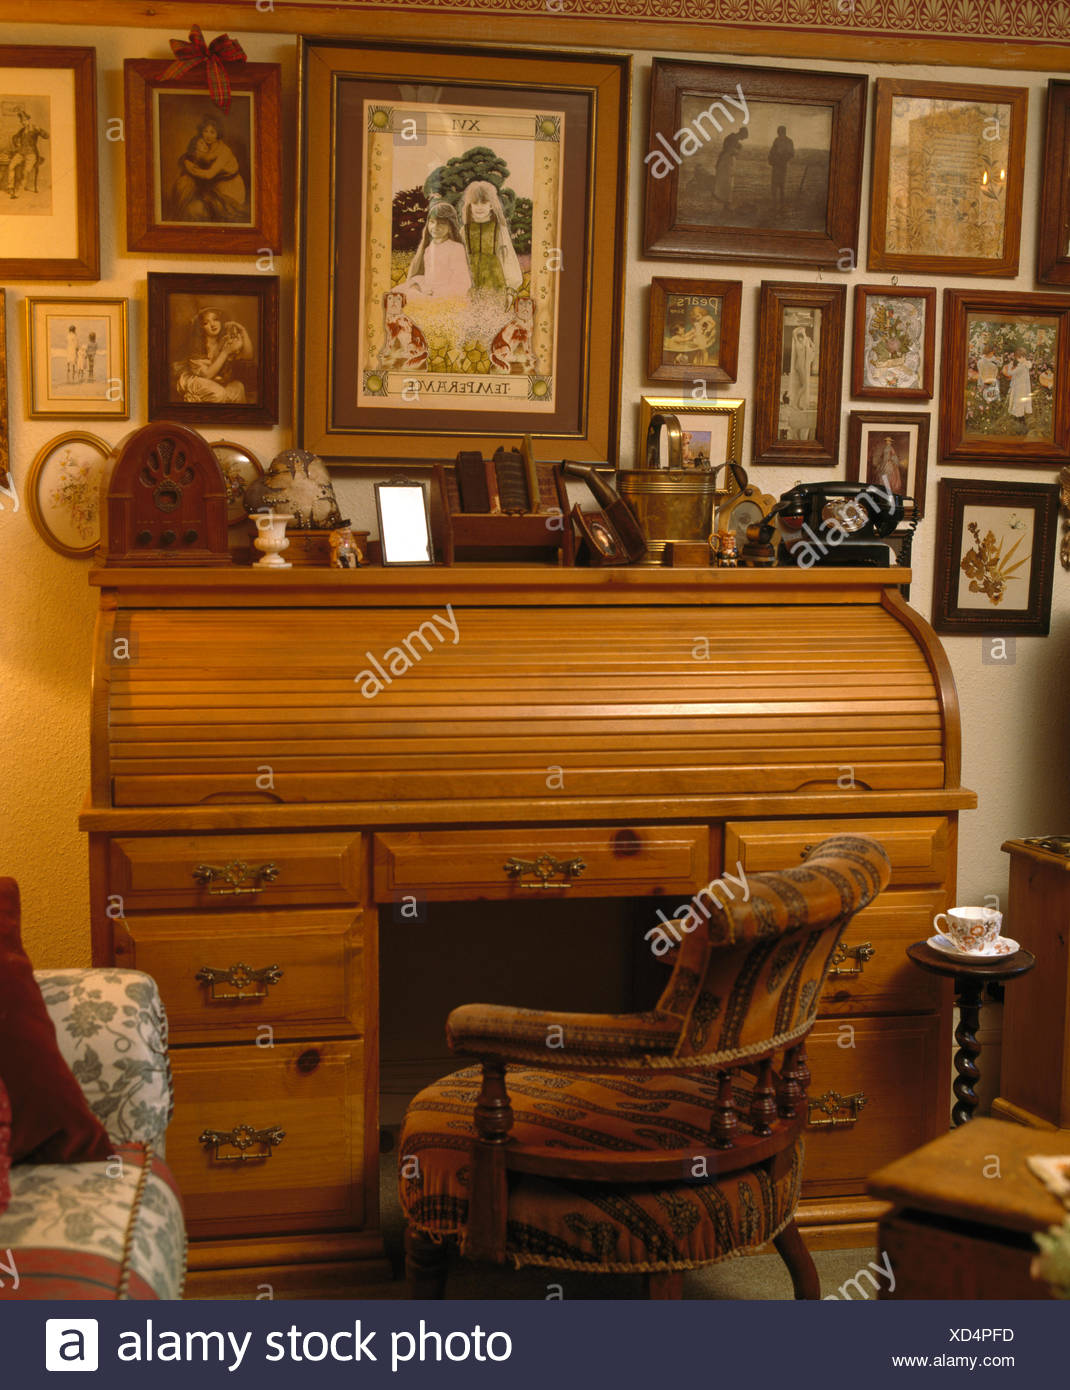 Collection of old framed photographs on wall above antique roll top desk in  country study - Collection Of Old Framed Photographs On Wall Above Antique Roll Top